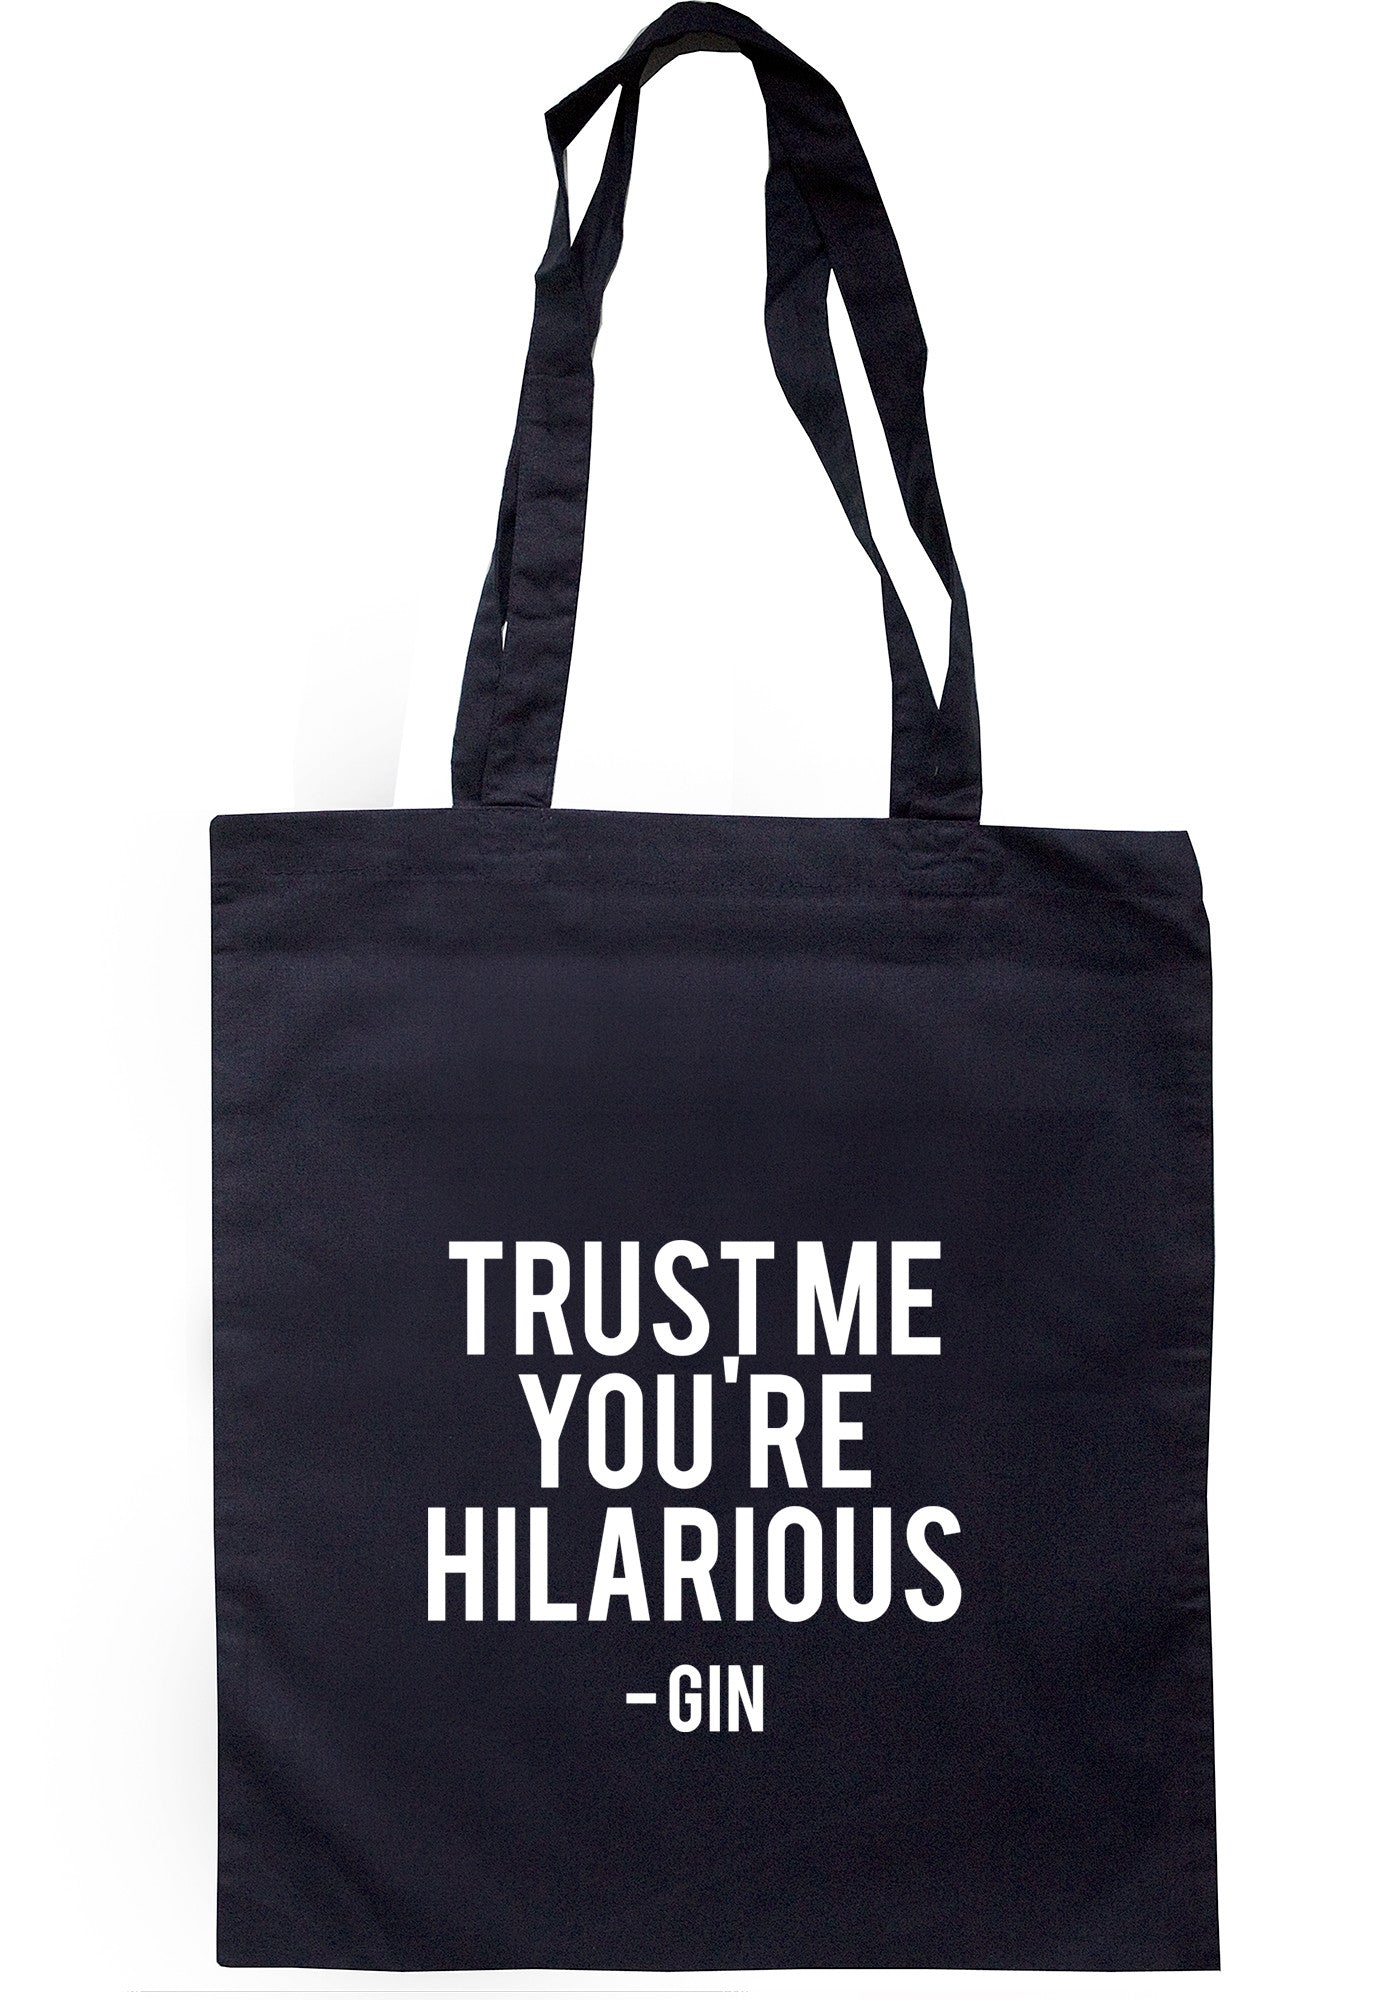 Trust Me You're Hilarious - Gin Tote Bag TB0405 - Illustrated Identity Ltd.